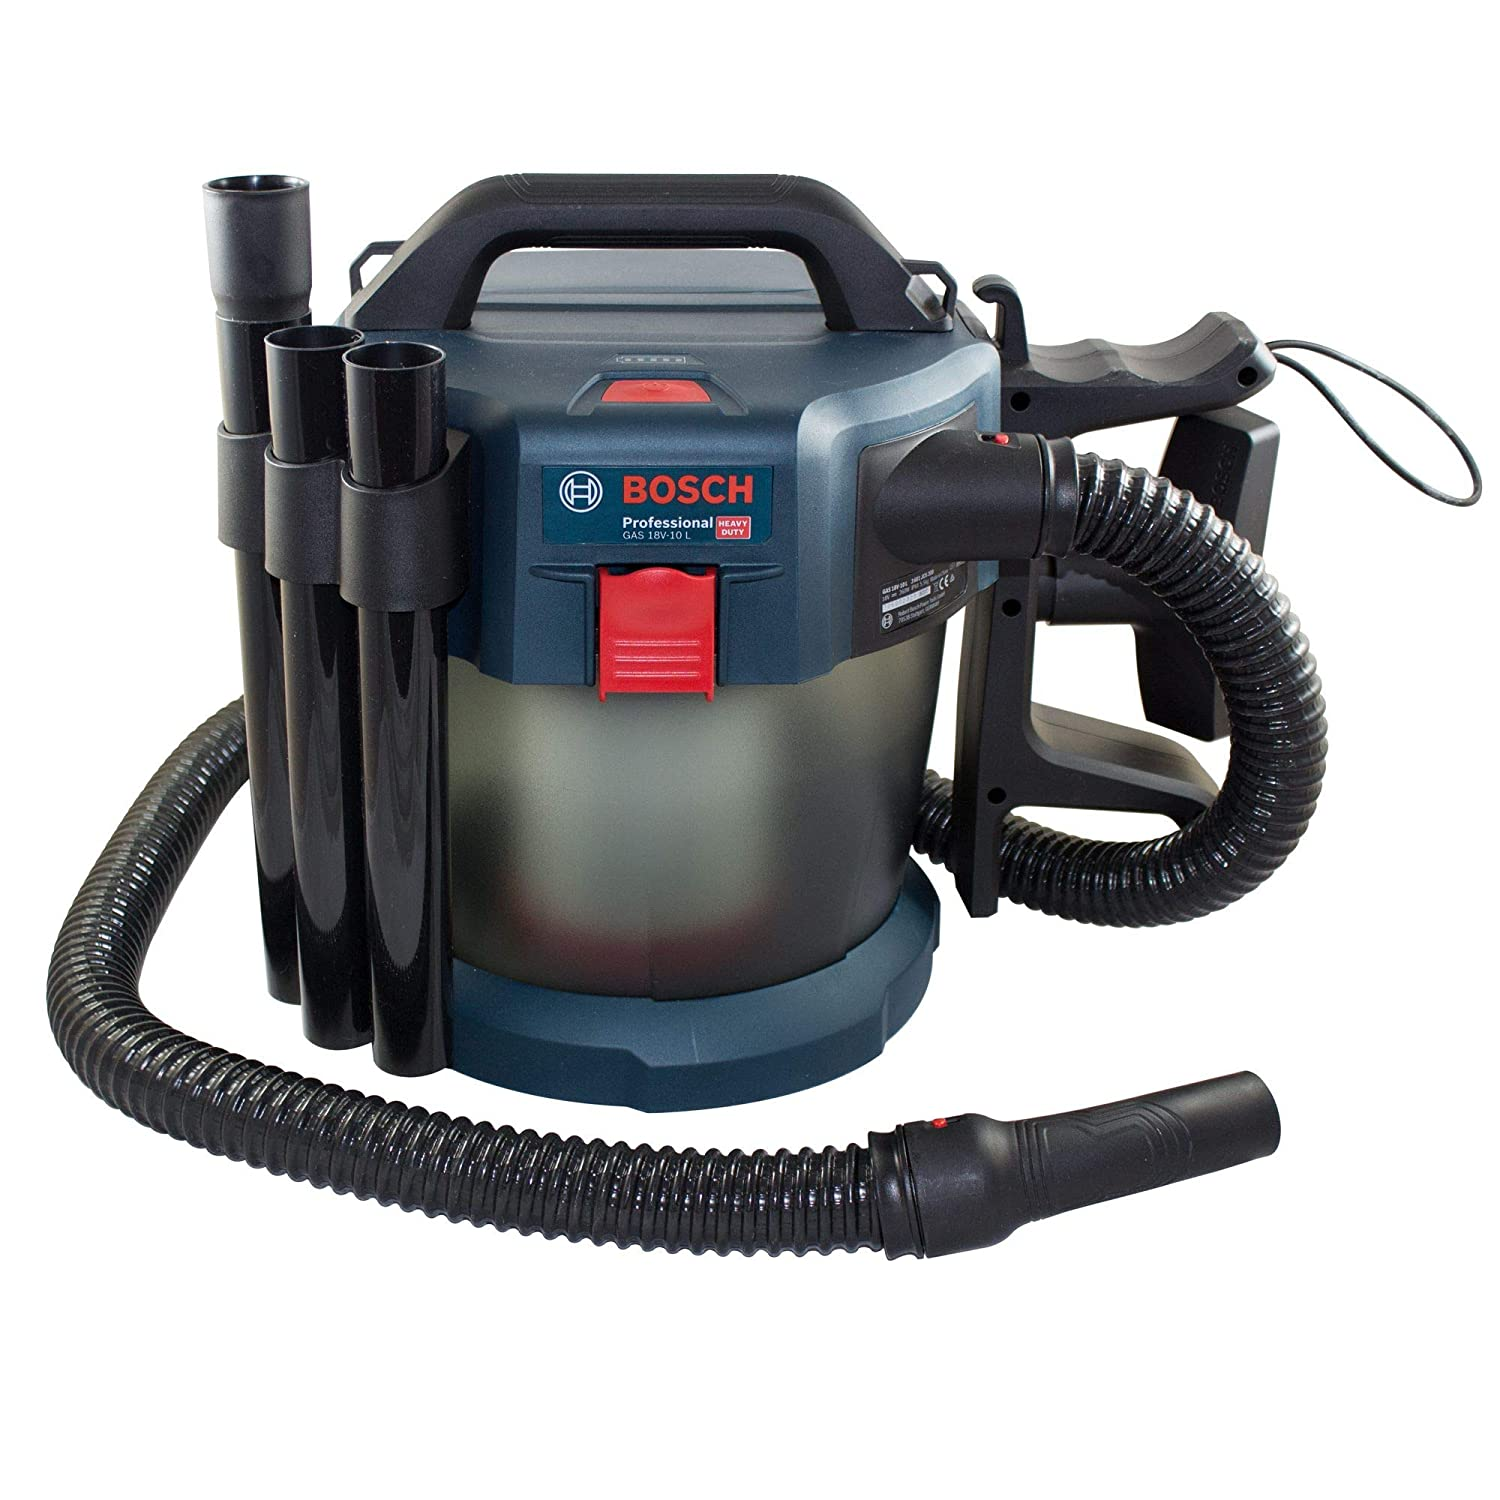 Bosch Professional 06019C6300 Gas Dust Extraction, 18 V - Blue